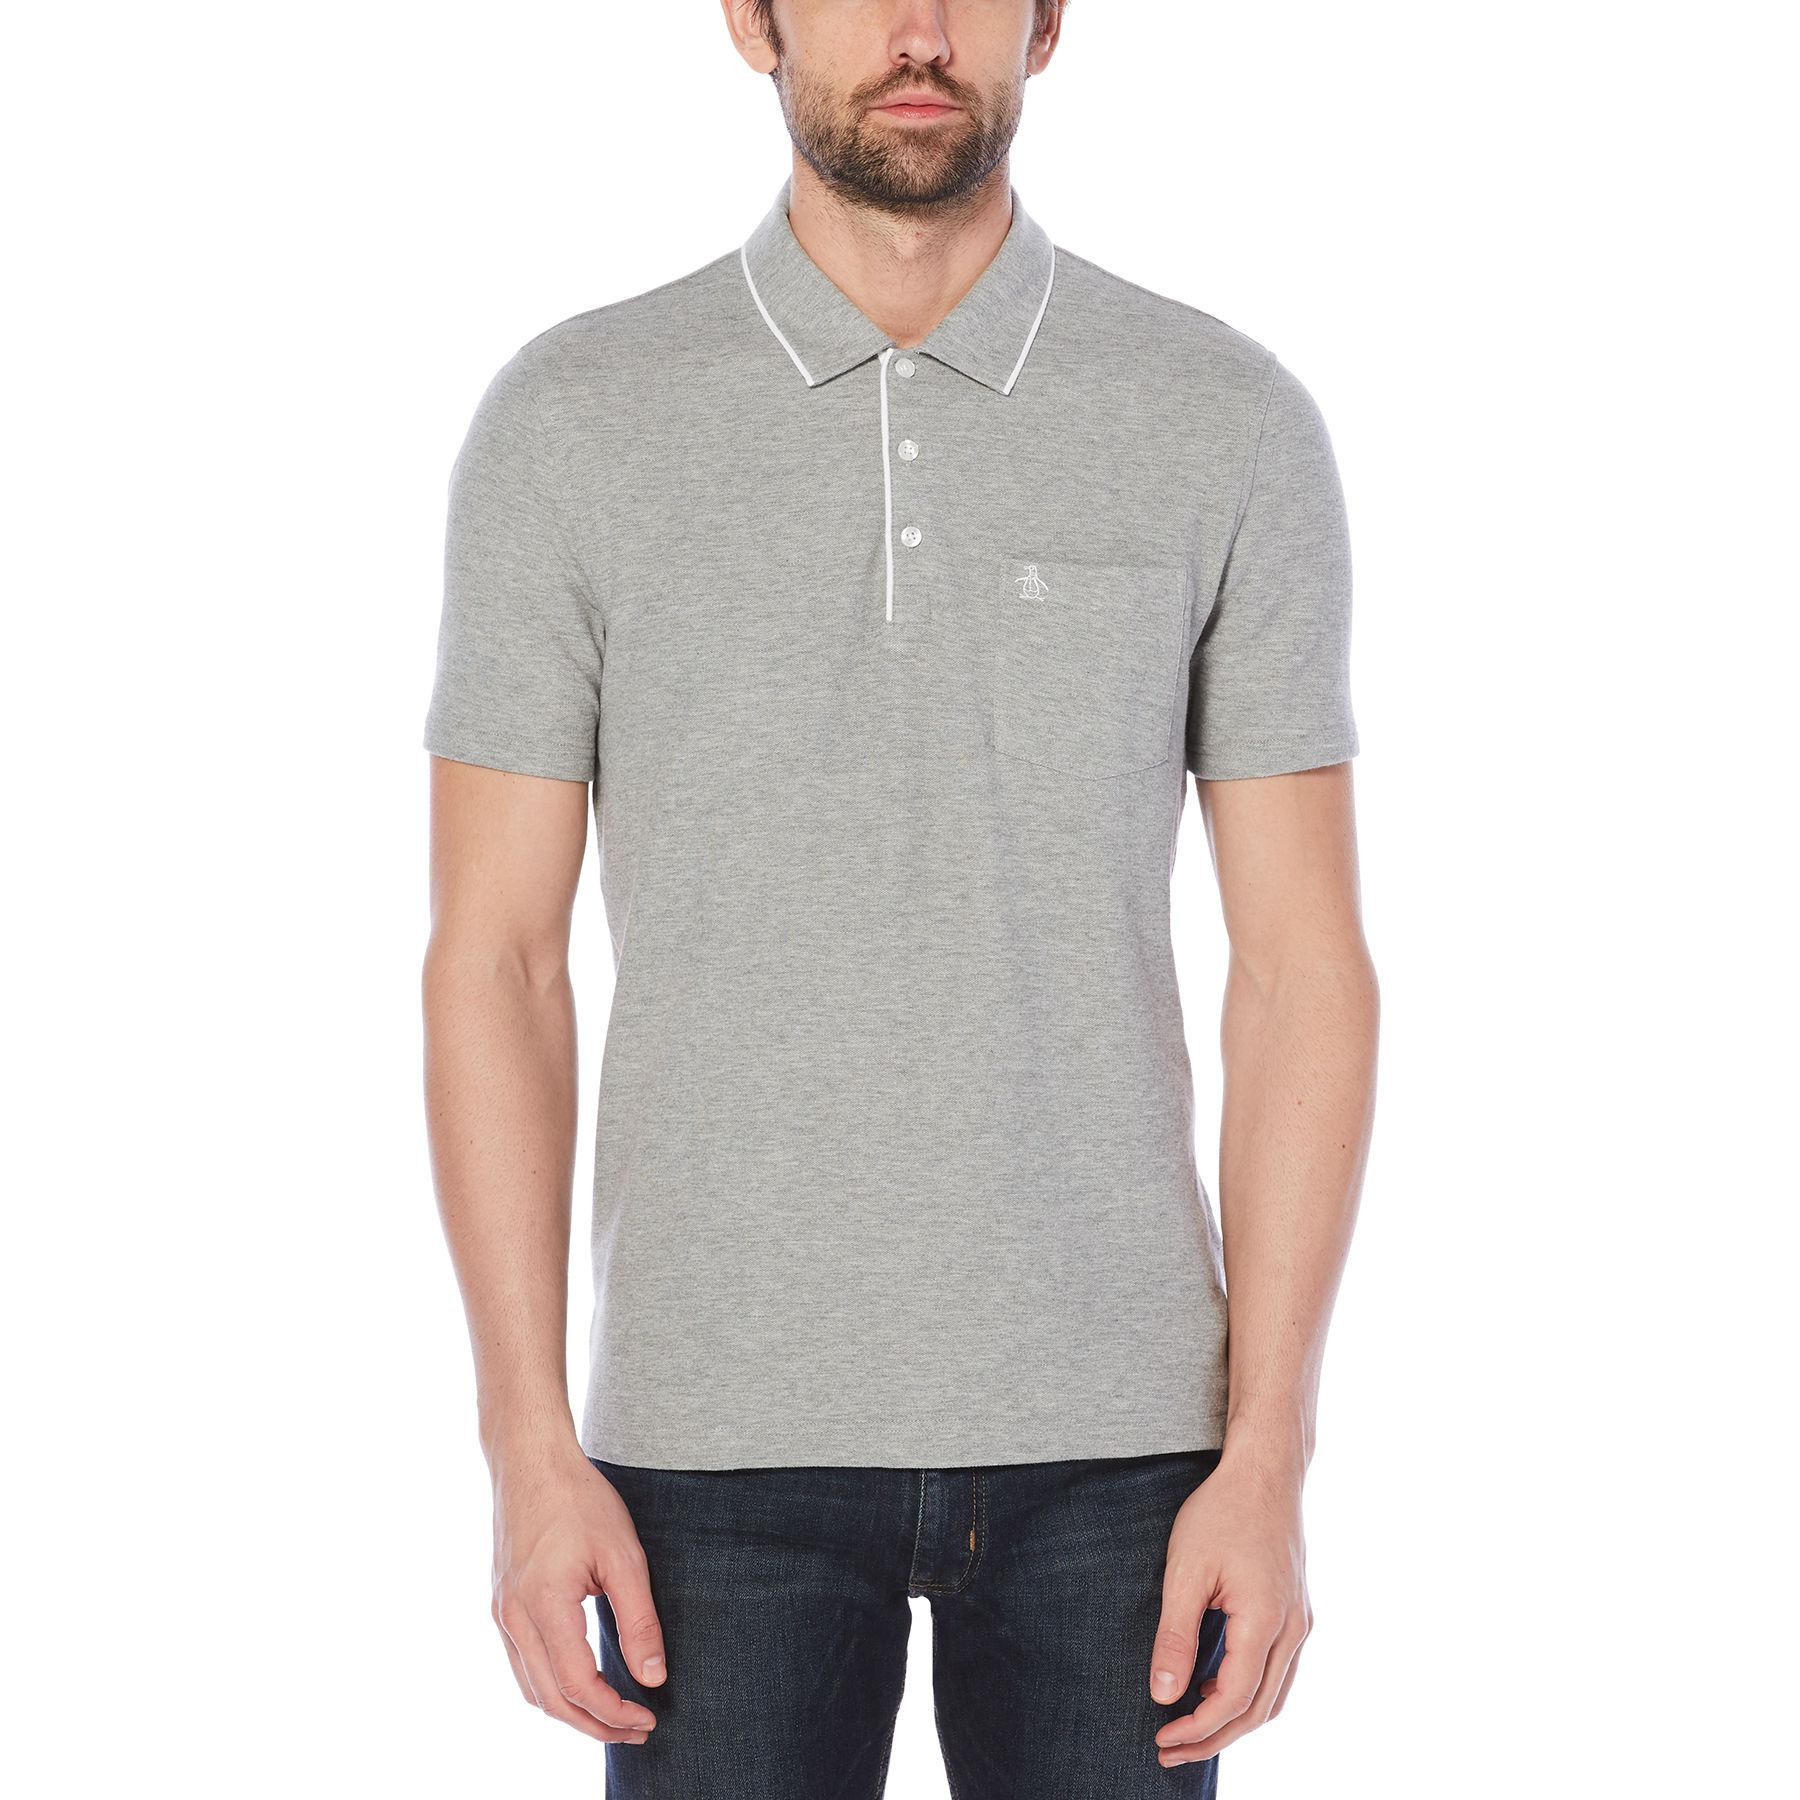 Lyst - Original Penguin Contrast Trim Basic Polo in Gray for Men b881509d28ca2